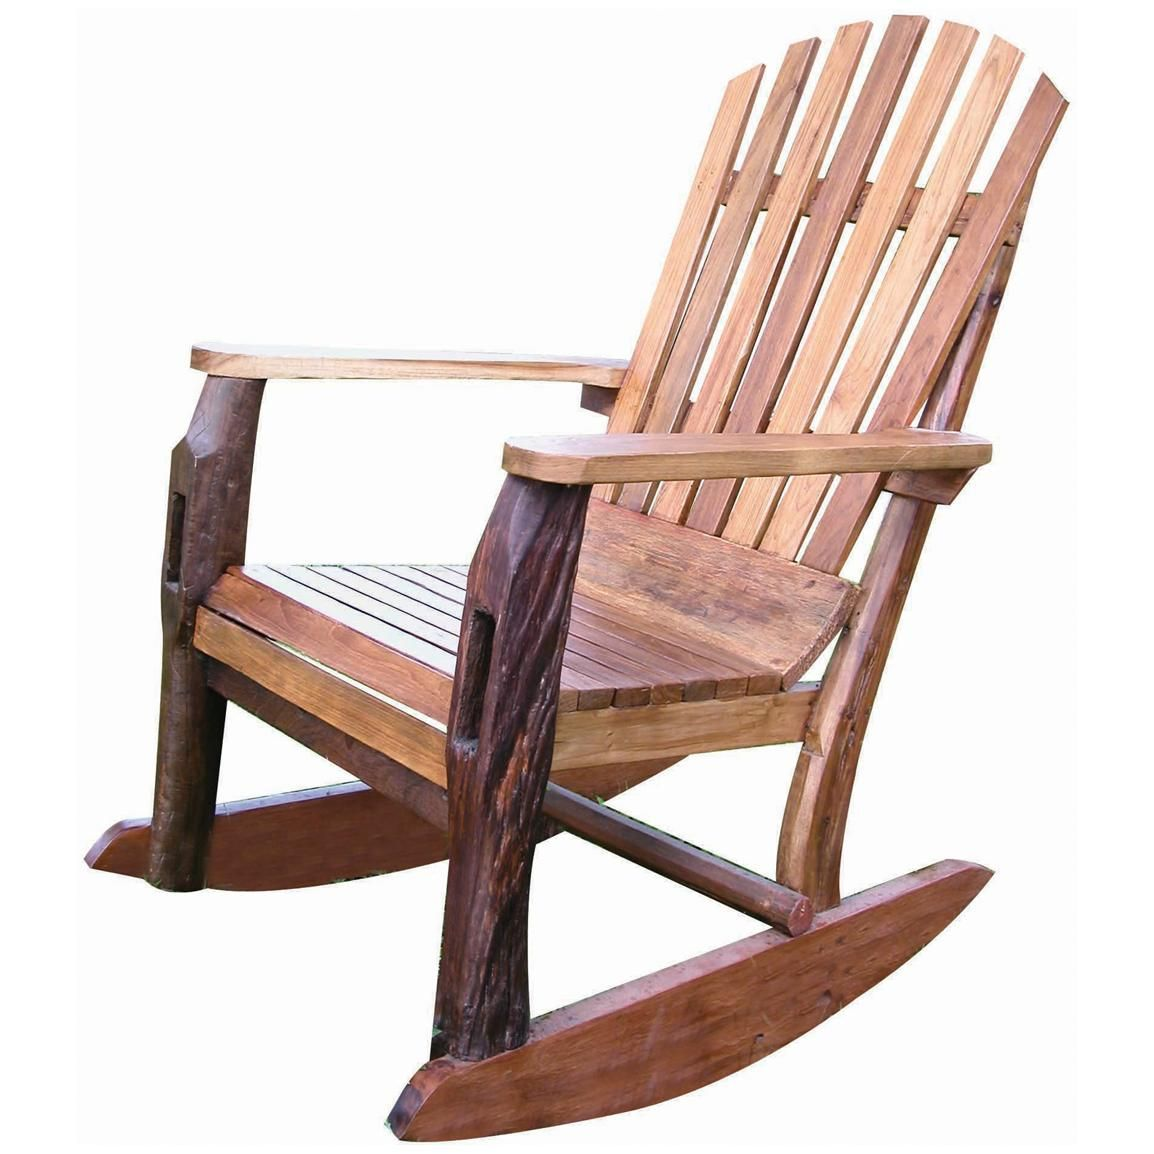 401145277448 together with 314970567667364275 also 3 also Santa Fe Black N White Balcony Swing Chair besides Covered Front Porch Design Ideas. on outdoor log rocking chairs